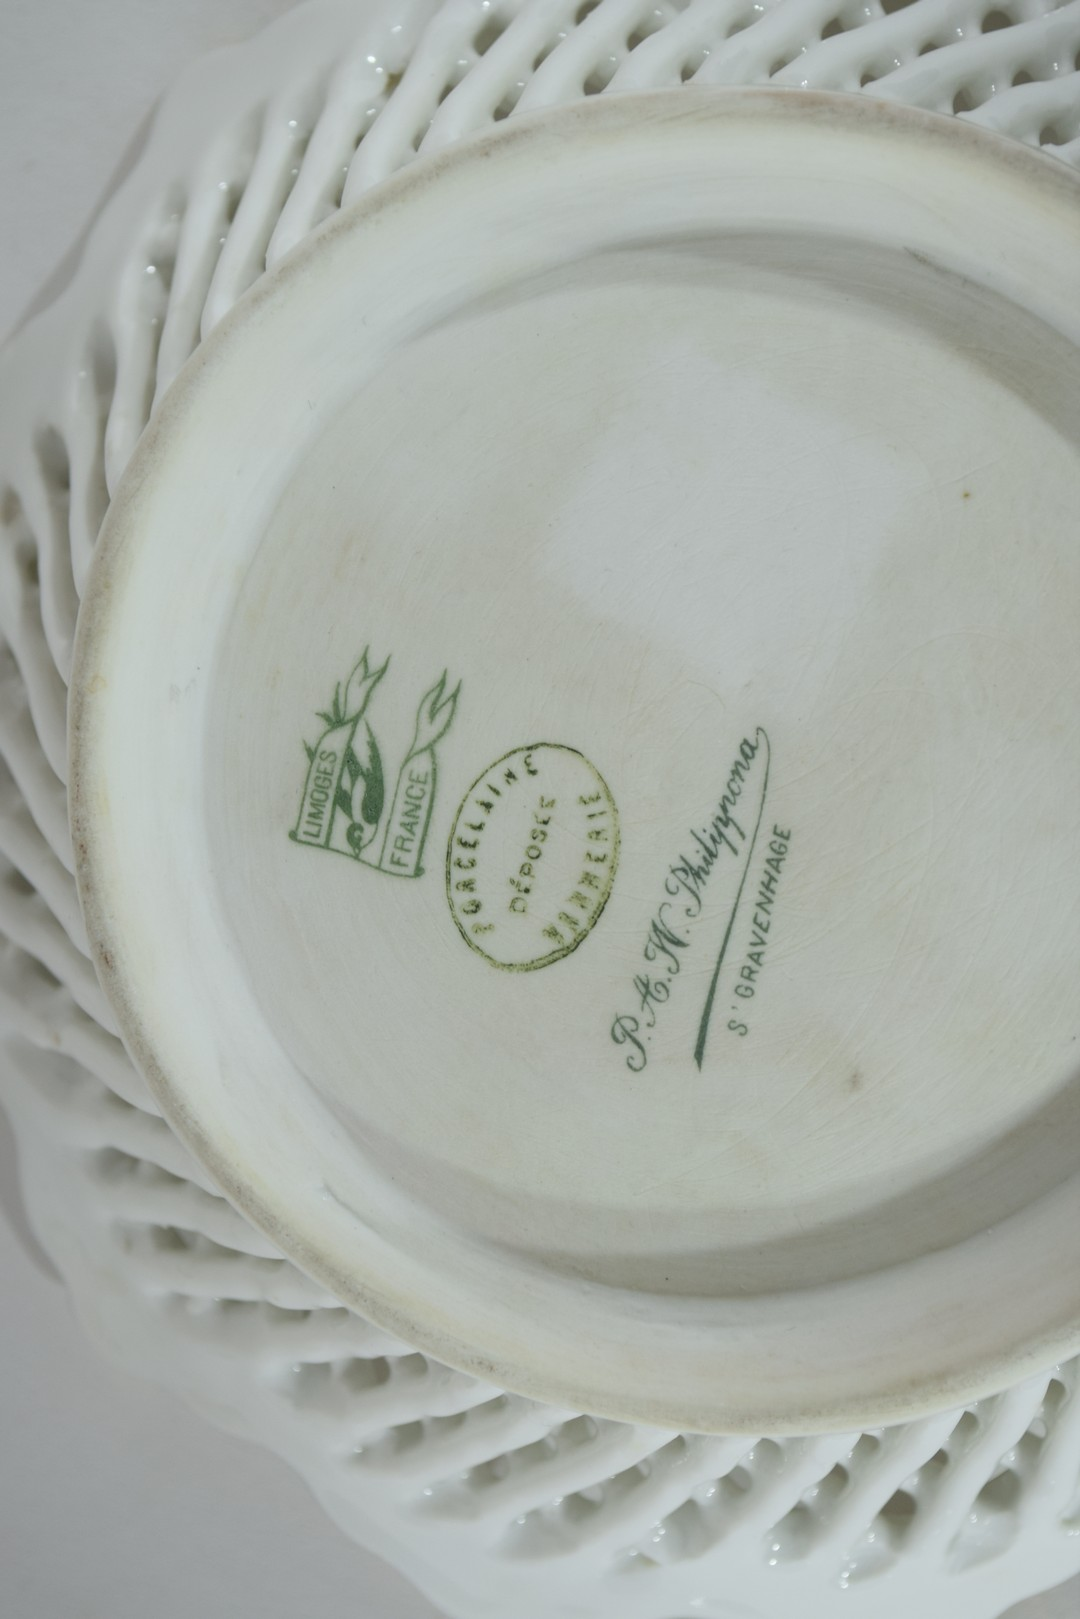 Group of Continental porcelains including a Vienna style cup and saucer - Image 7 of 12